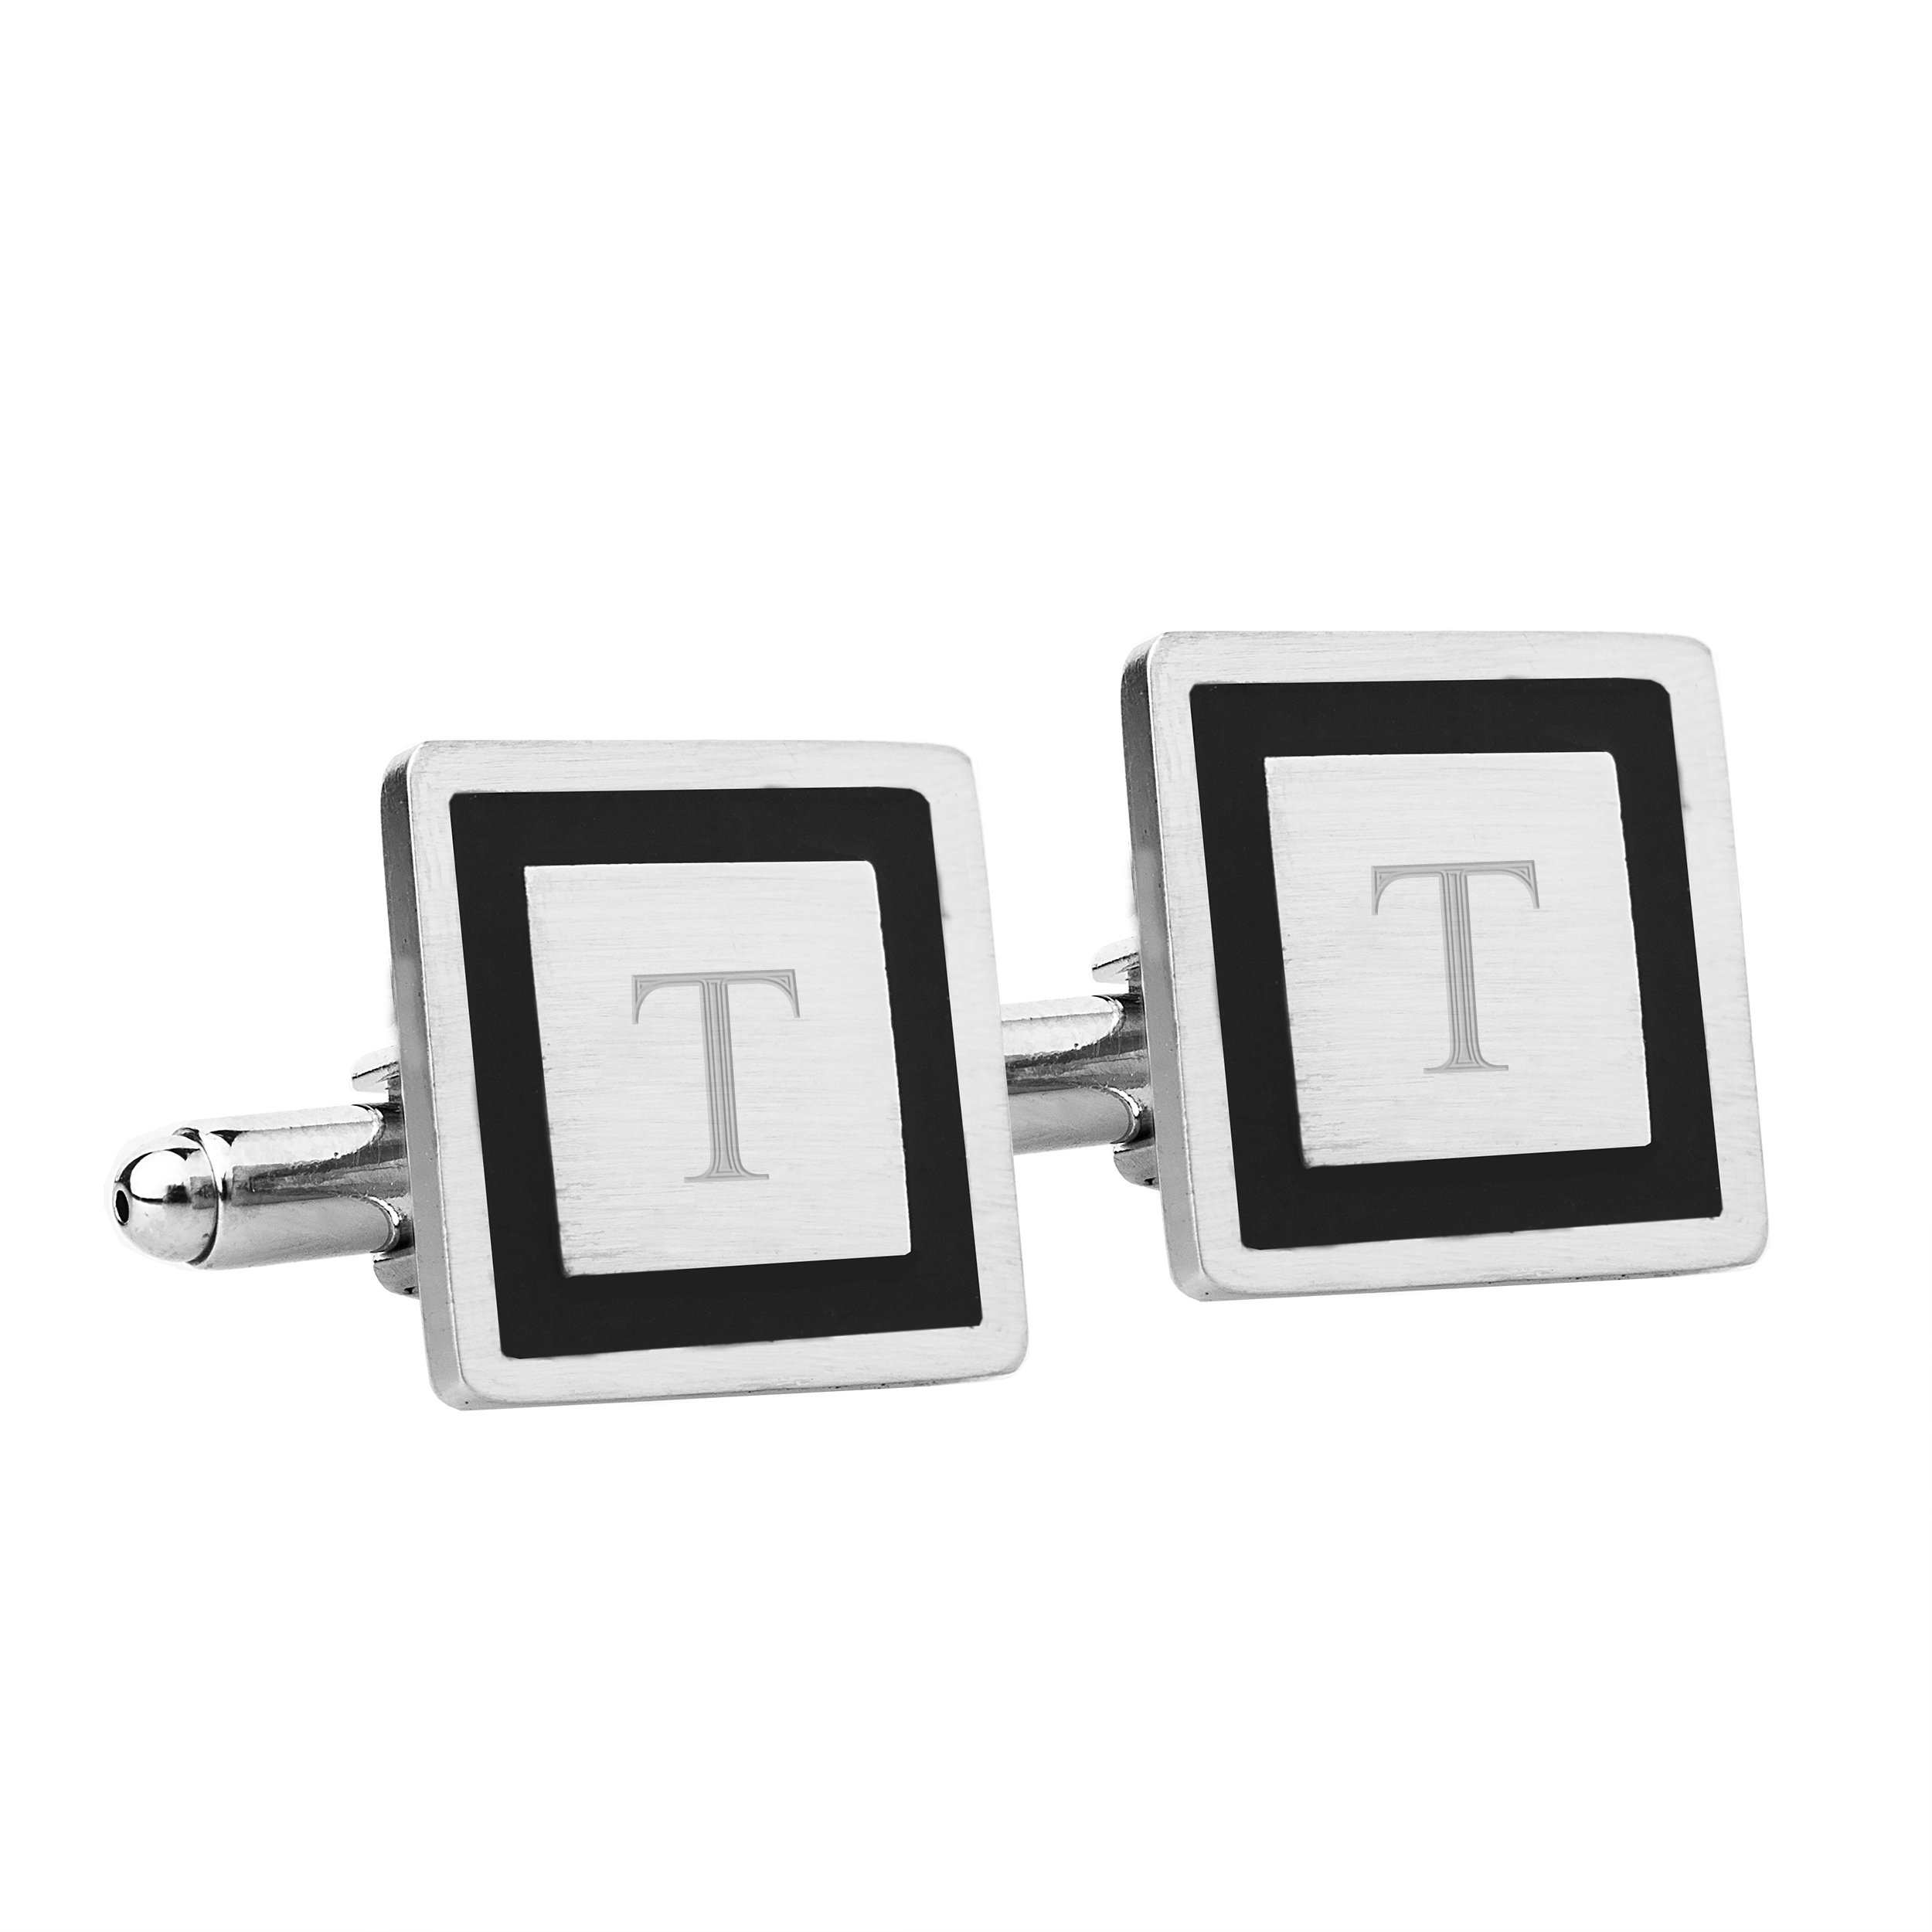 Cathy's Concepts Personalized Black Border Designer Cuff Links, Monogrammed Letter T